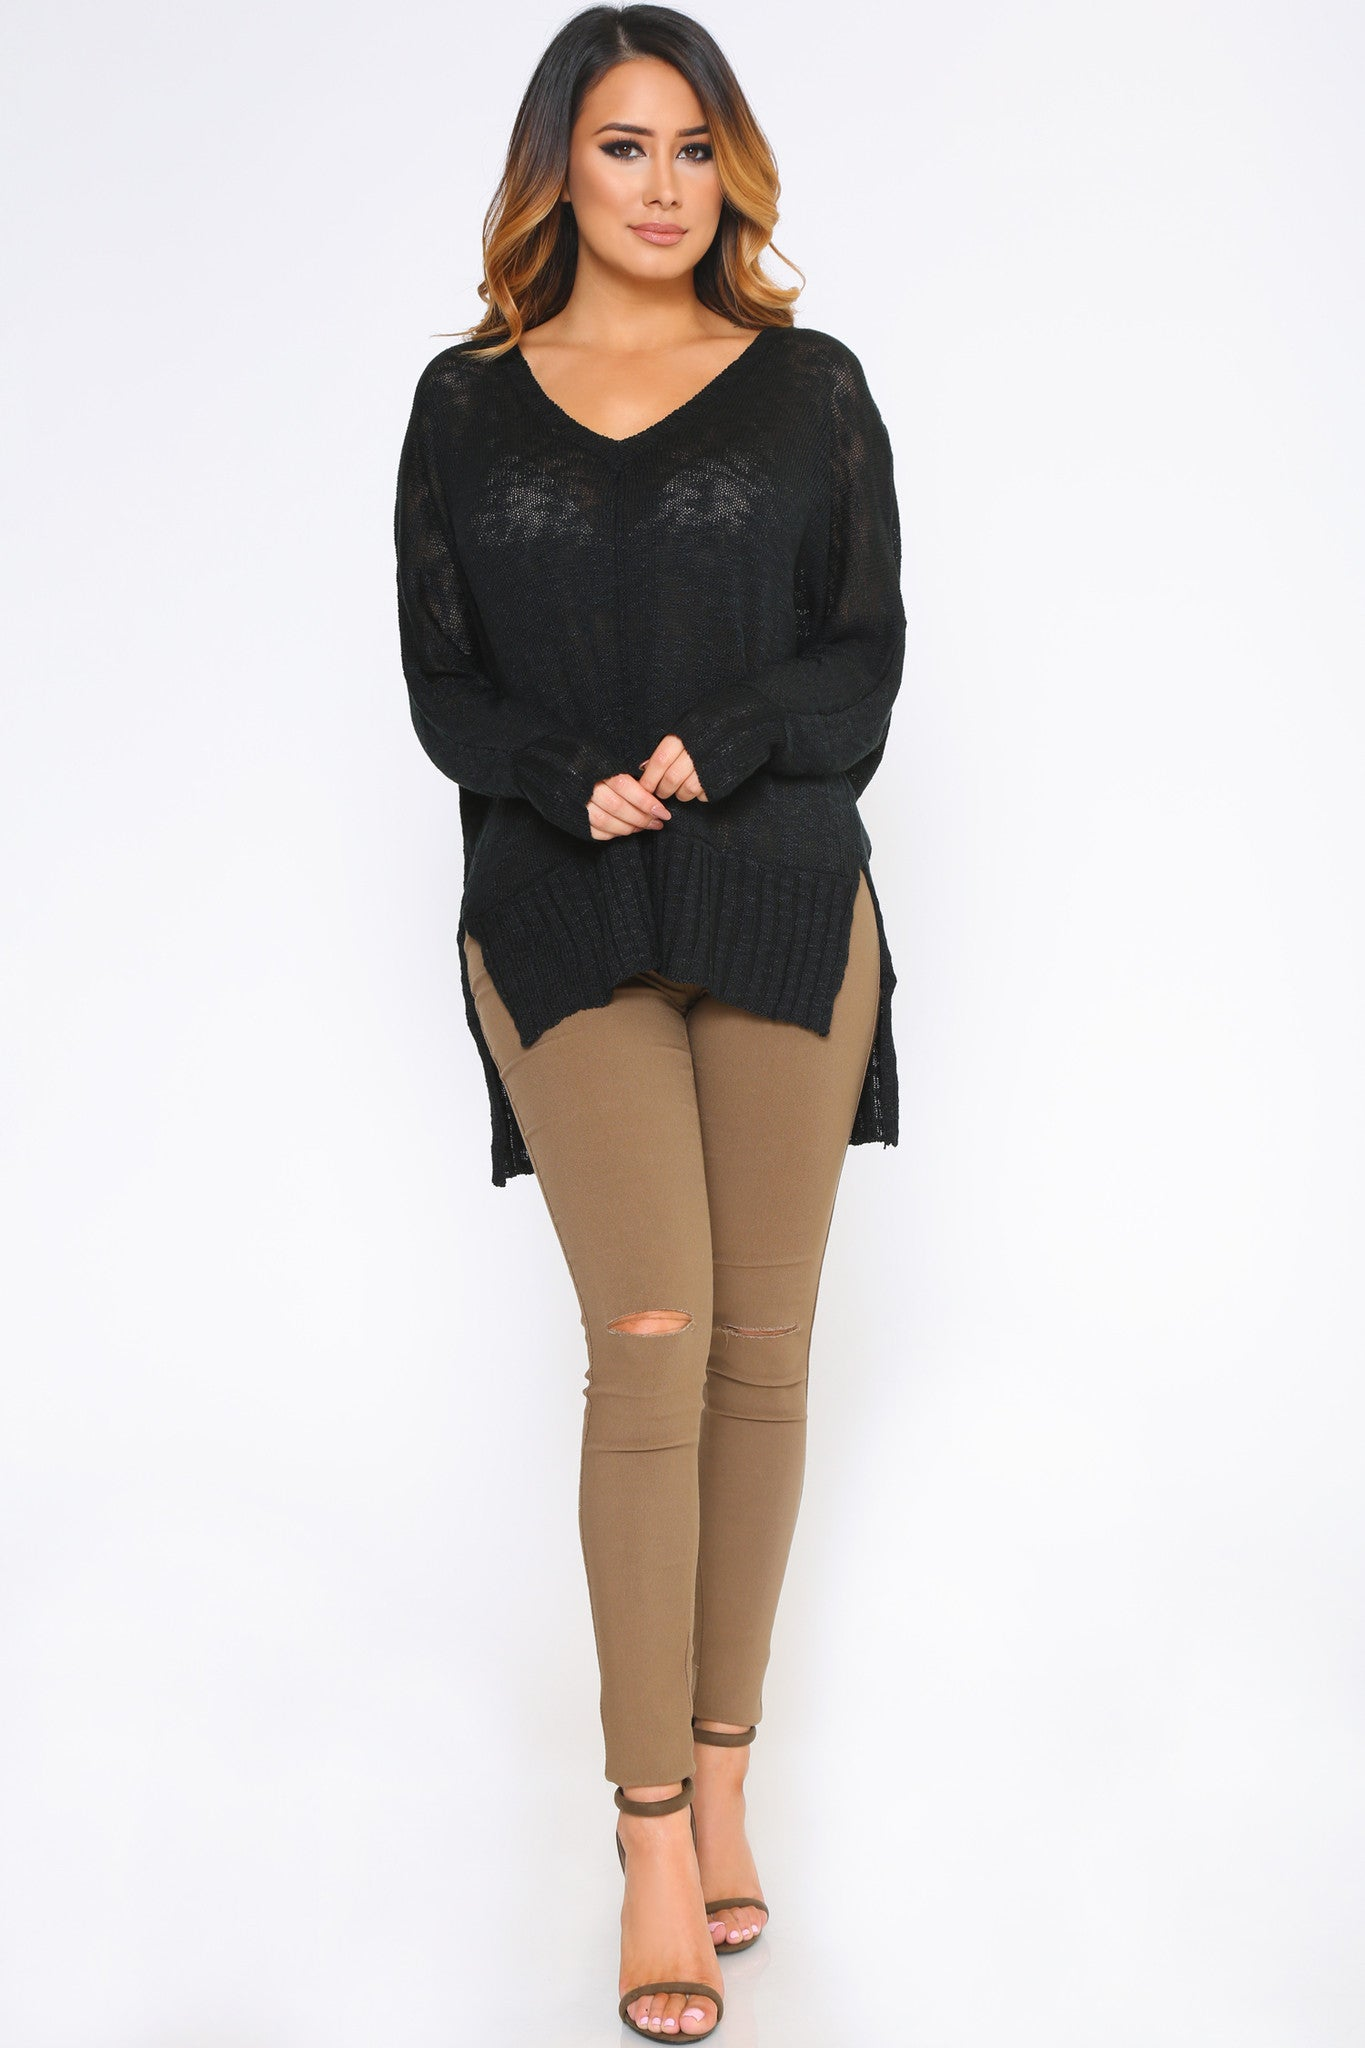 KARINA SWEATER - Glam Envy - 2